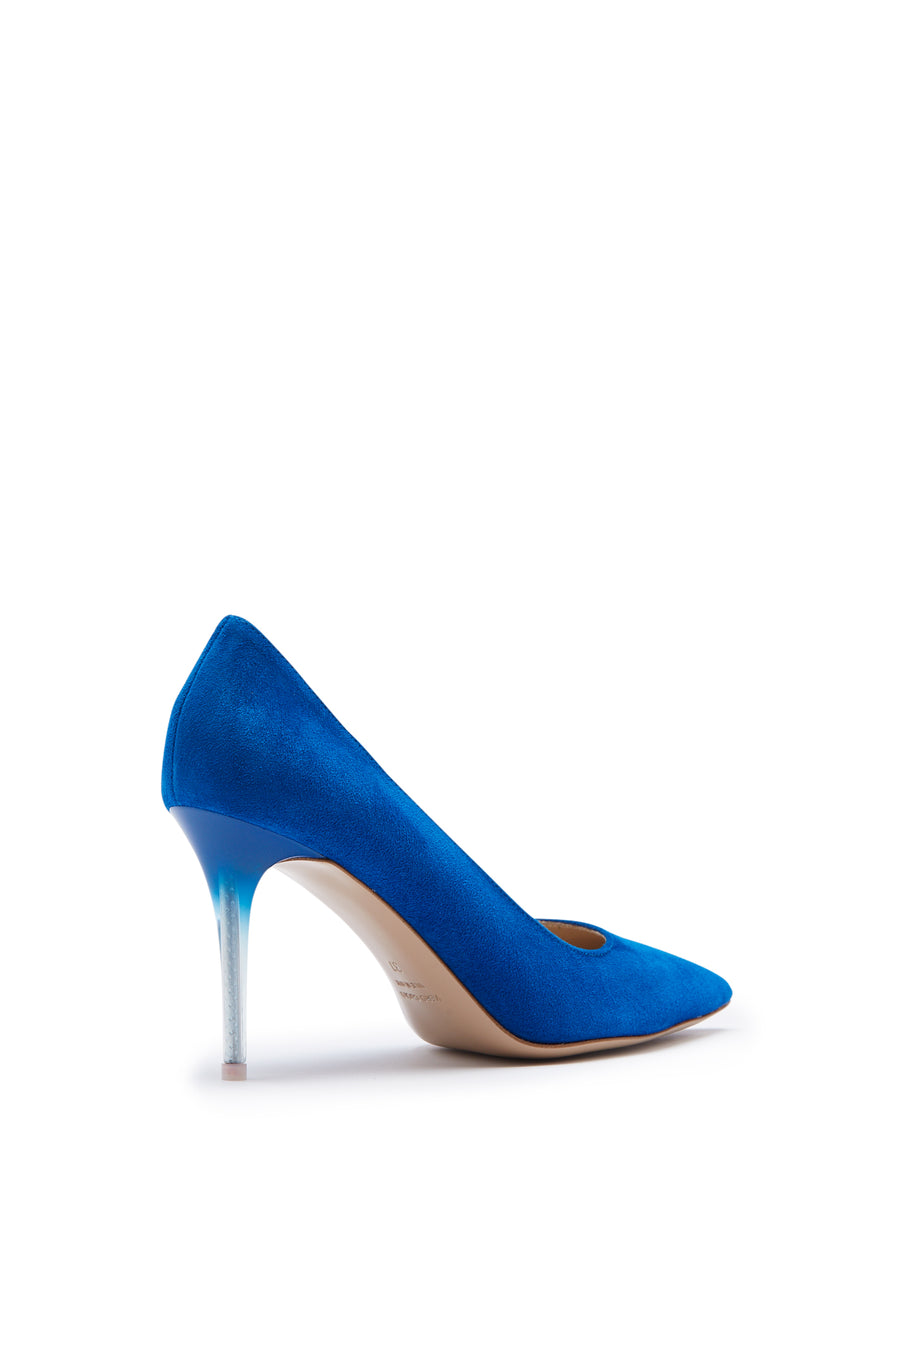 Pointed Leather Pump, Italian calf leather, 9cm plexi heel with a sprayed finish. Color Blue